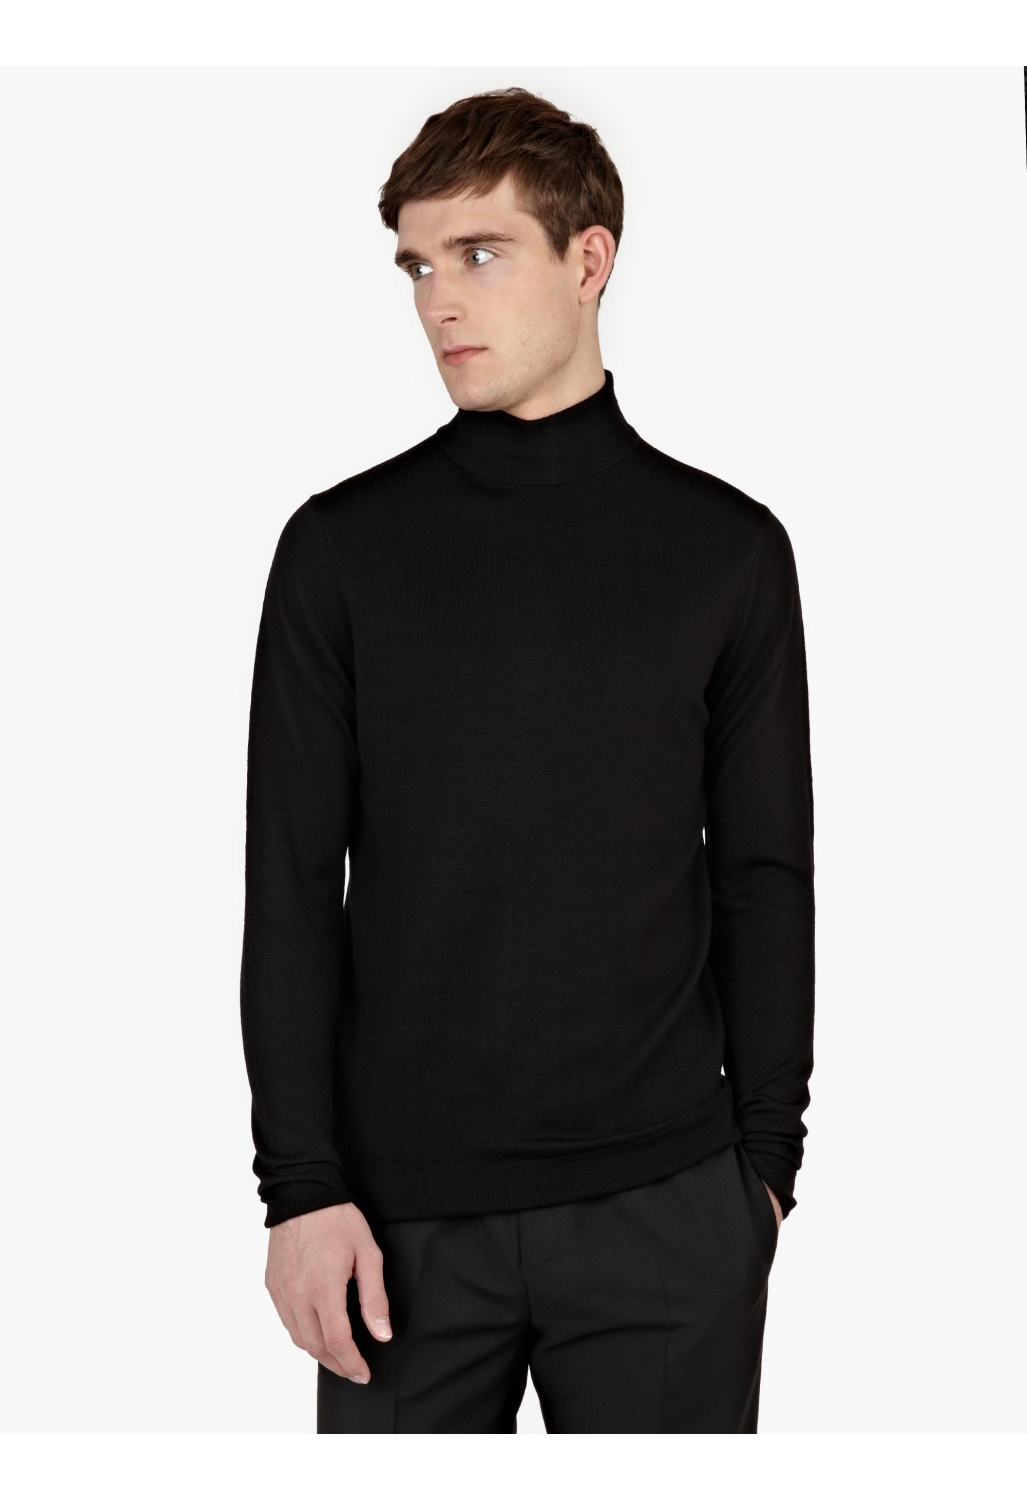 Discover the range of men's turtle and roll neck jumpers with ASOS. From a variety of styles and colours, in merino wool and lambs wool. Shop now at ASOS. Calvin Klein Jeans knitted roll neck jumper with contrast sleeve black. £ Farah Gosforth merino roll neck jumper in sand. £ BOSS Kupetto roll neck wool mix jumper in camel.